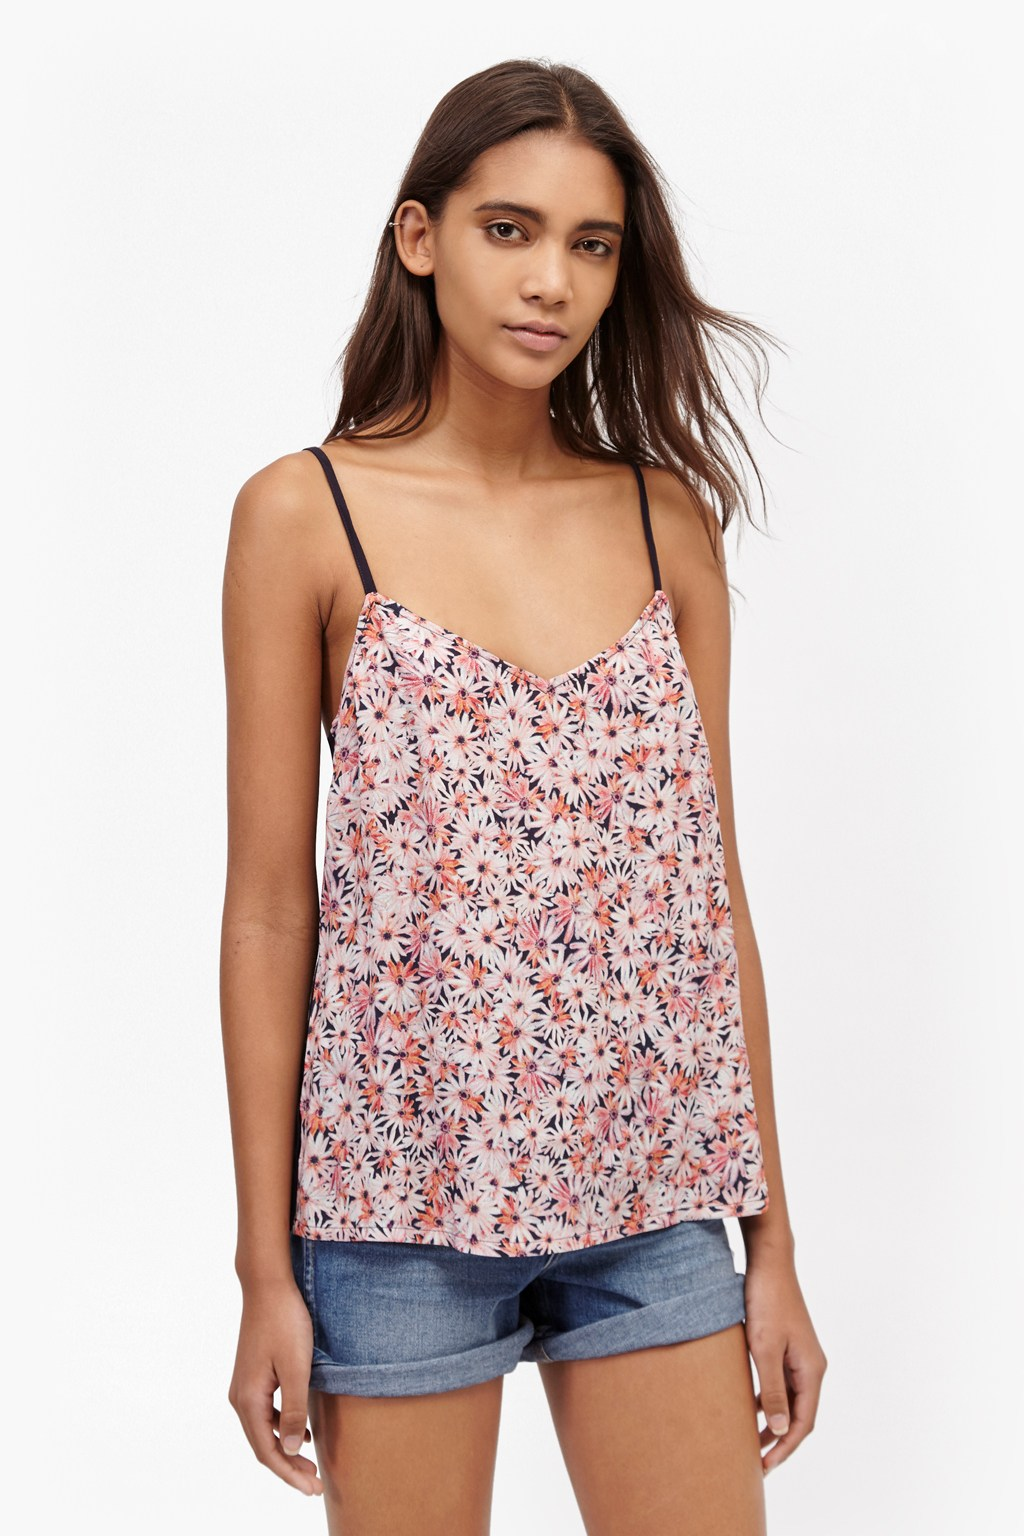 Bacongo Daisy Printed Strappy Top. loading images.